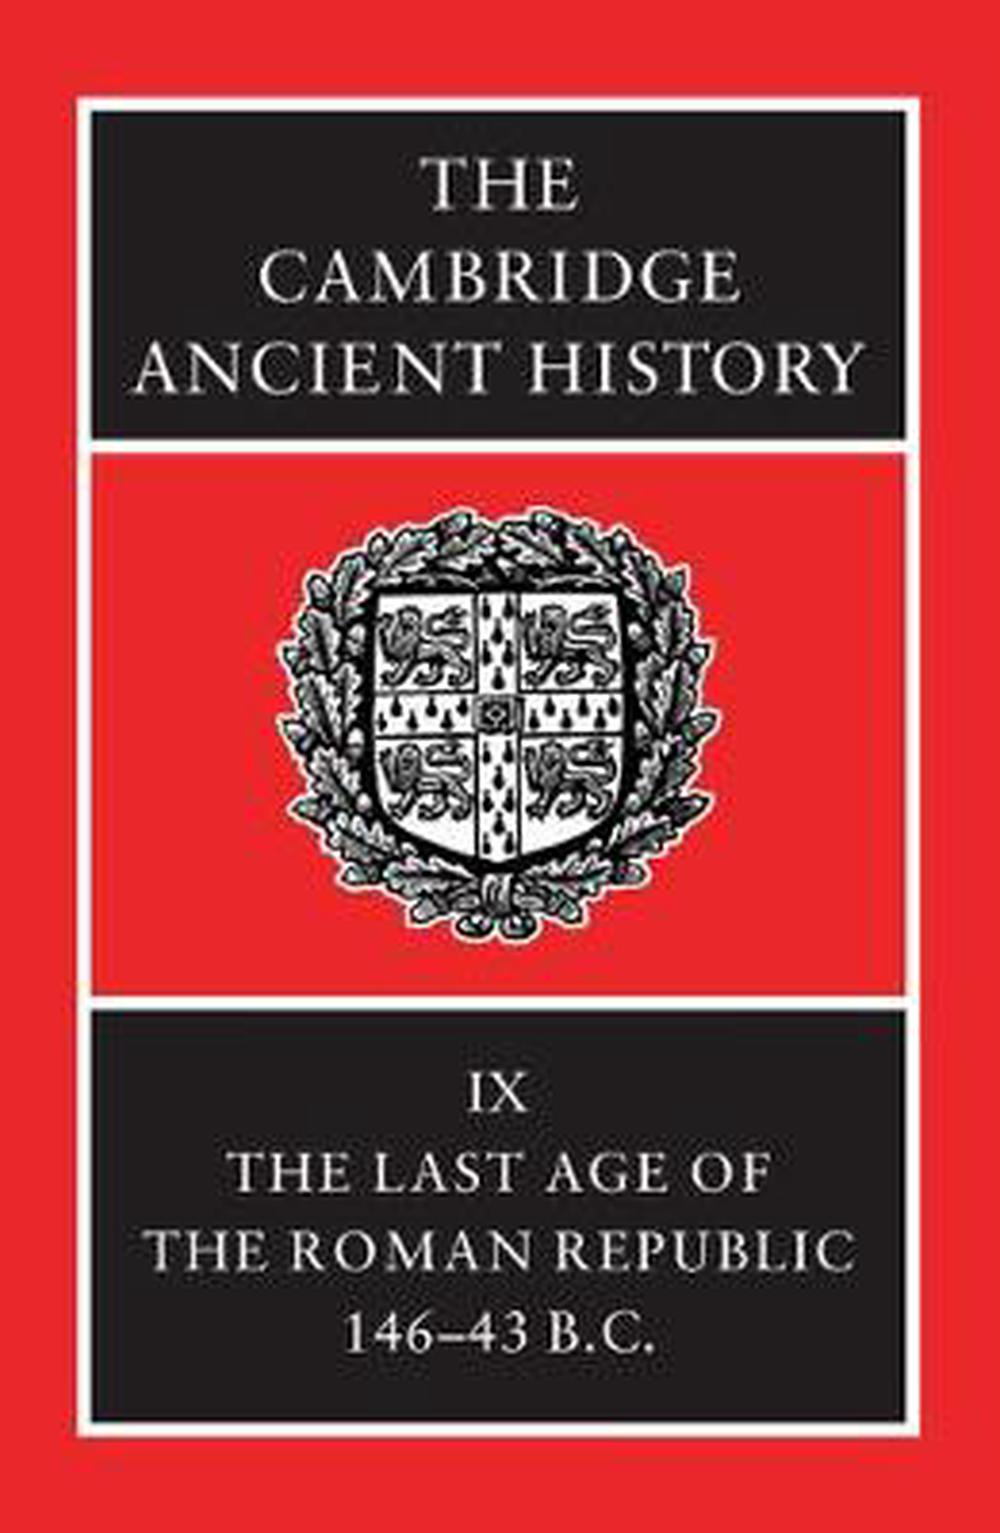 The Cambridge Ancient History: The Last Age of the Roman Republic, 146-43 B.C.